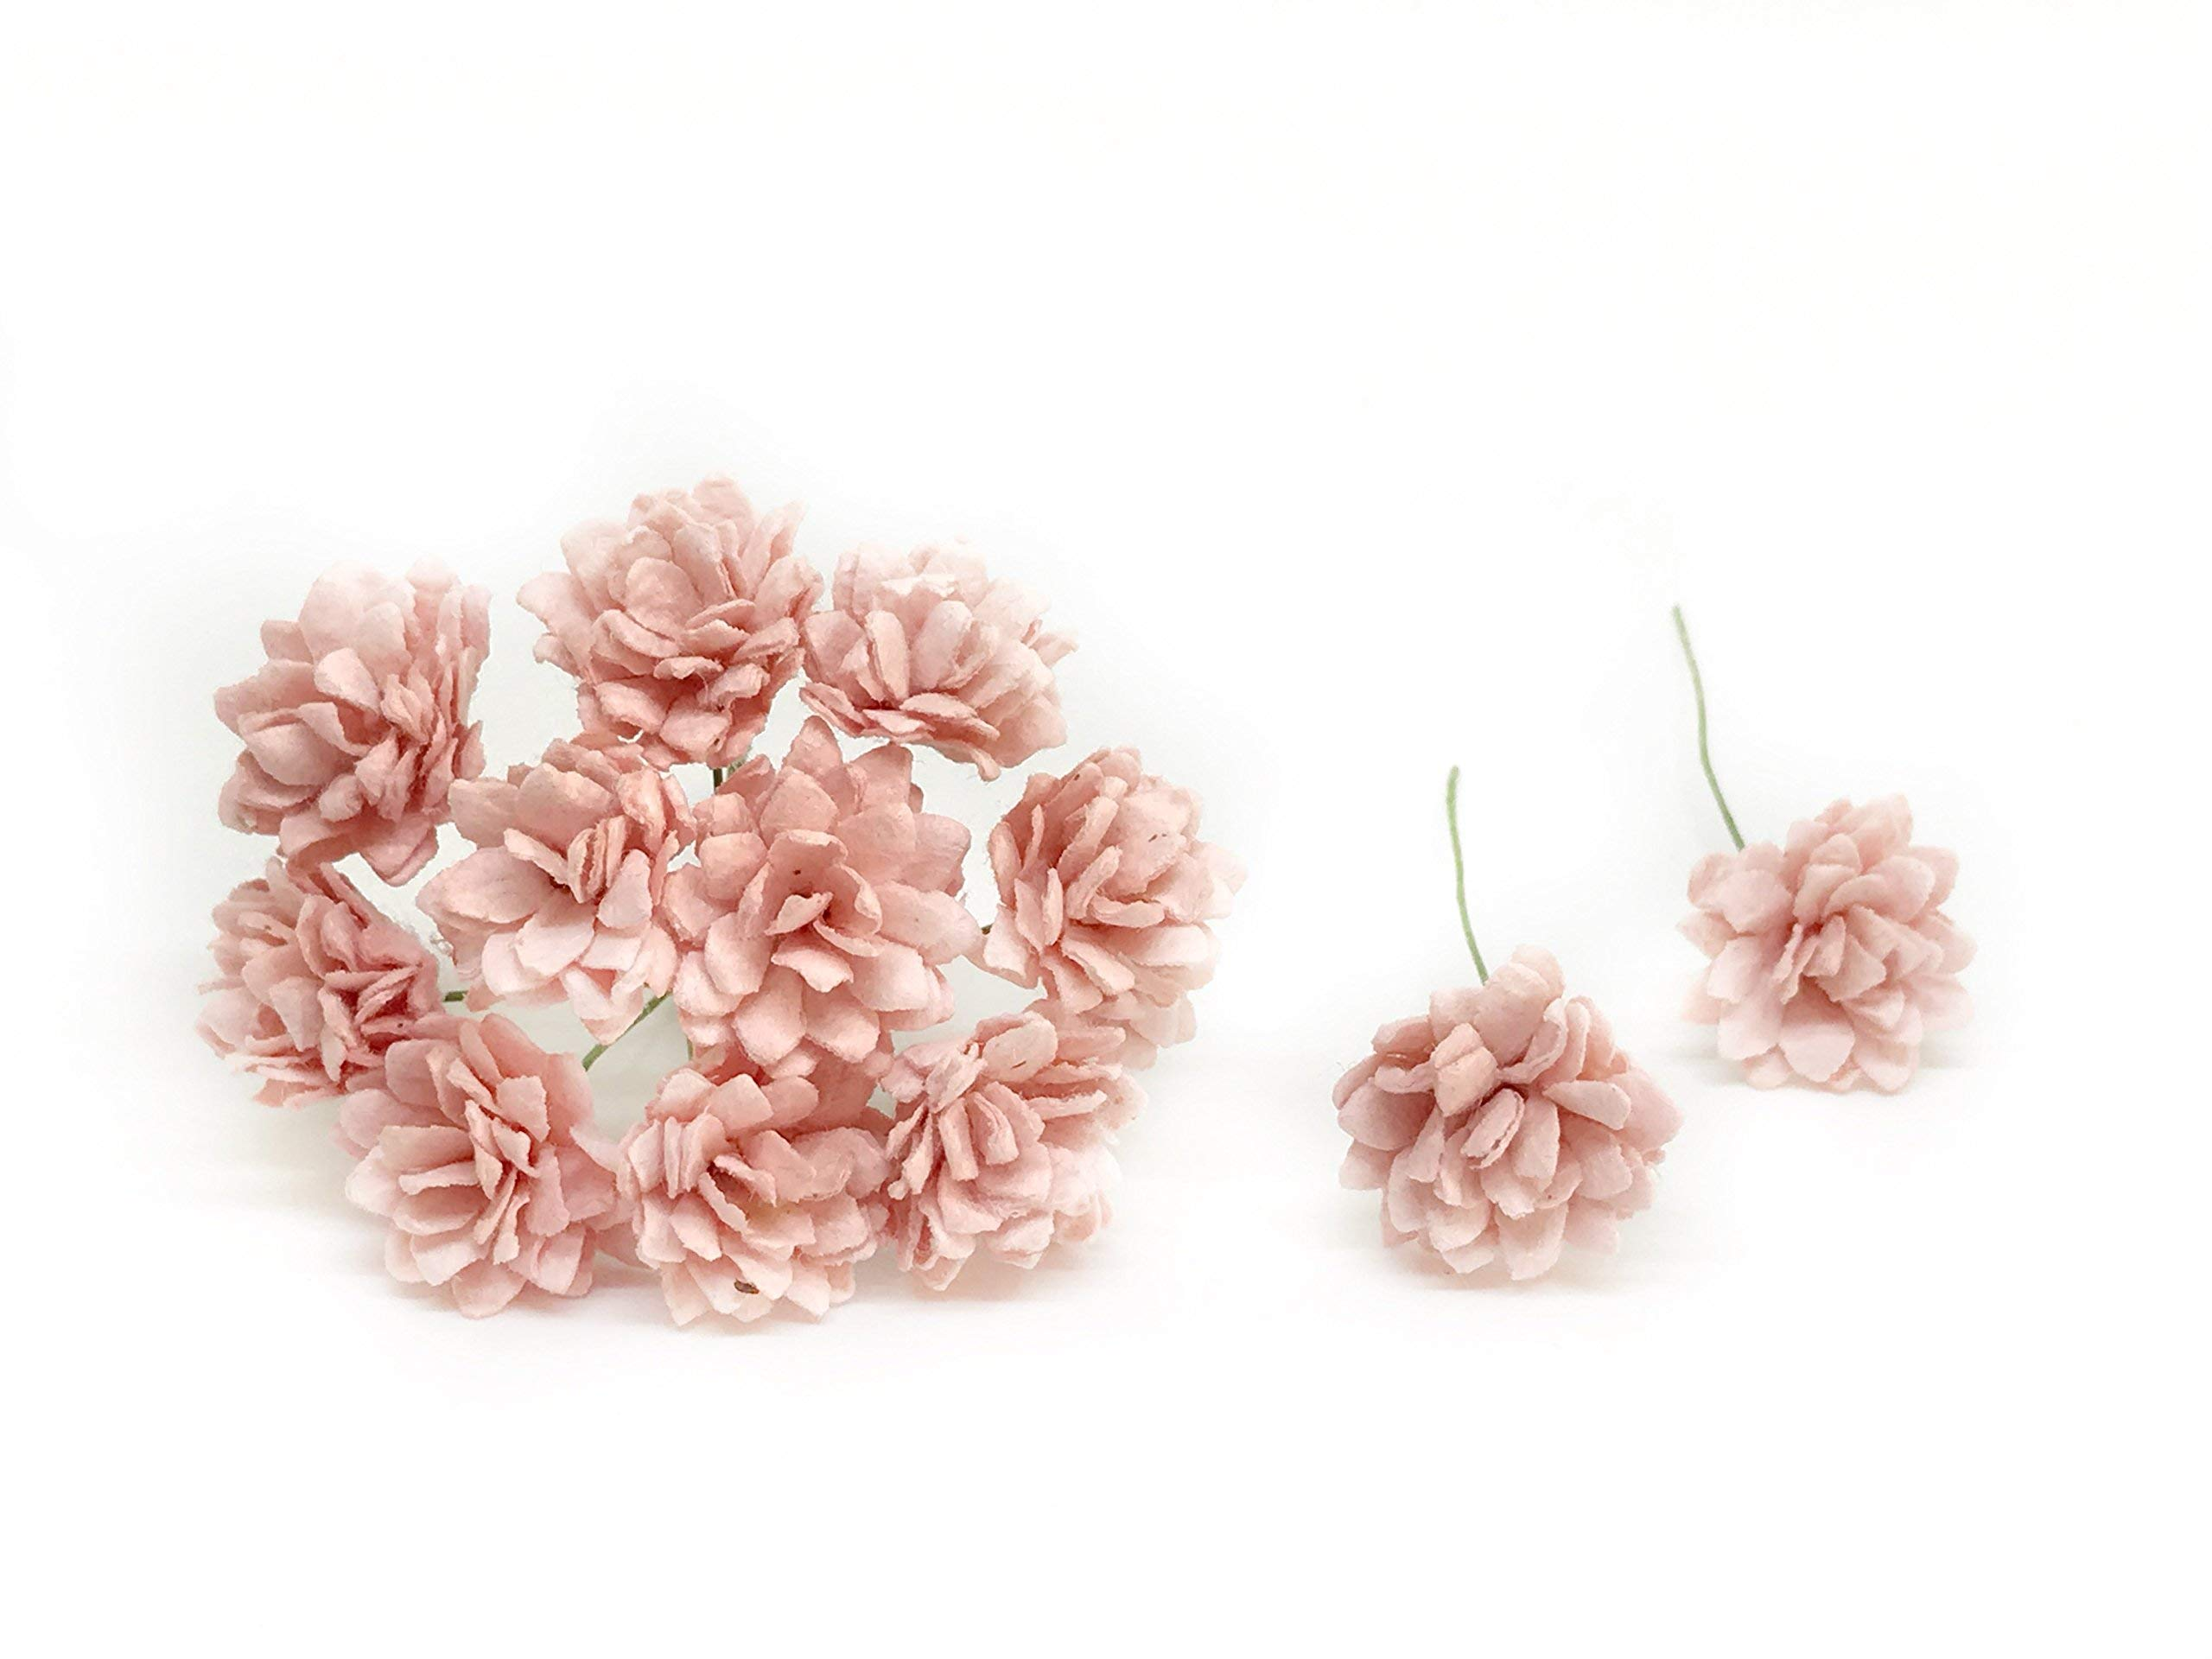 2cm-Light-Pink-Blush-Paper-Flowers-Babys-Breath-Artificial-Flowers-Fake-Flowers-Paper-Craft-Flowers-Mulberry-Paper-Flowers-50-Pieces